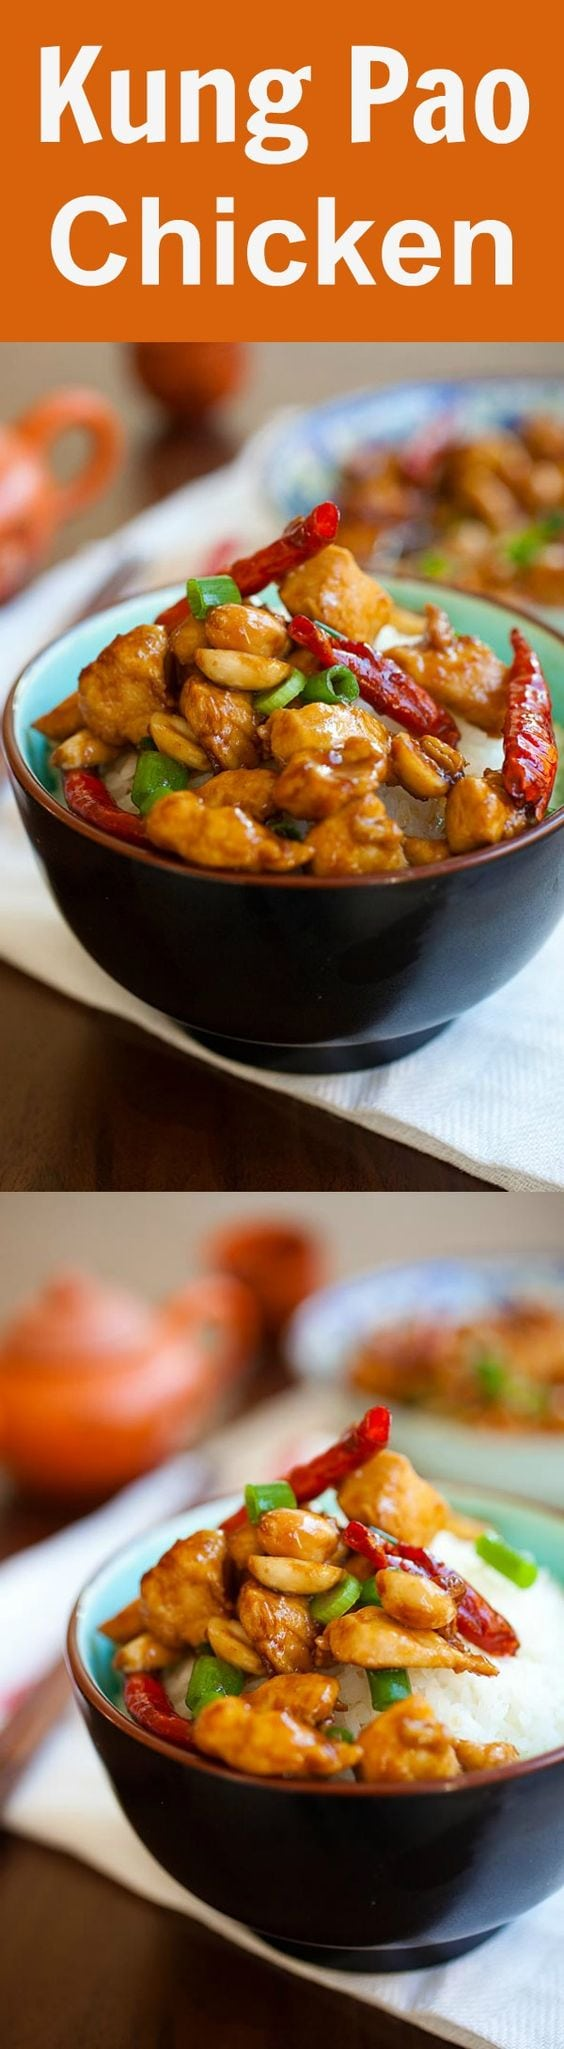 Kung Pao Chicken | Easy Delicious Recipes